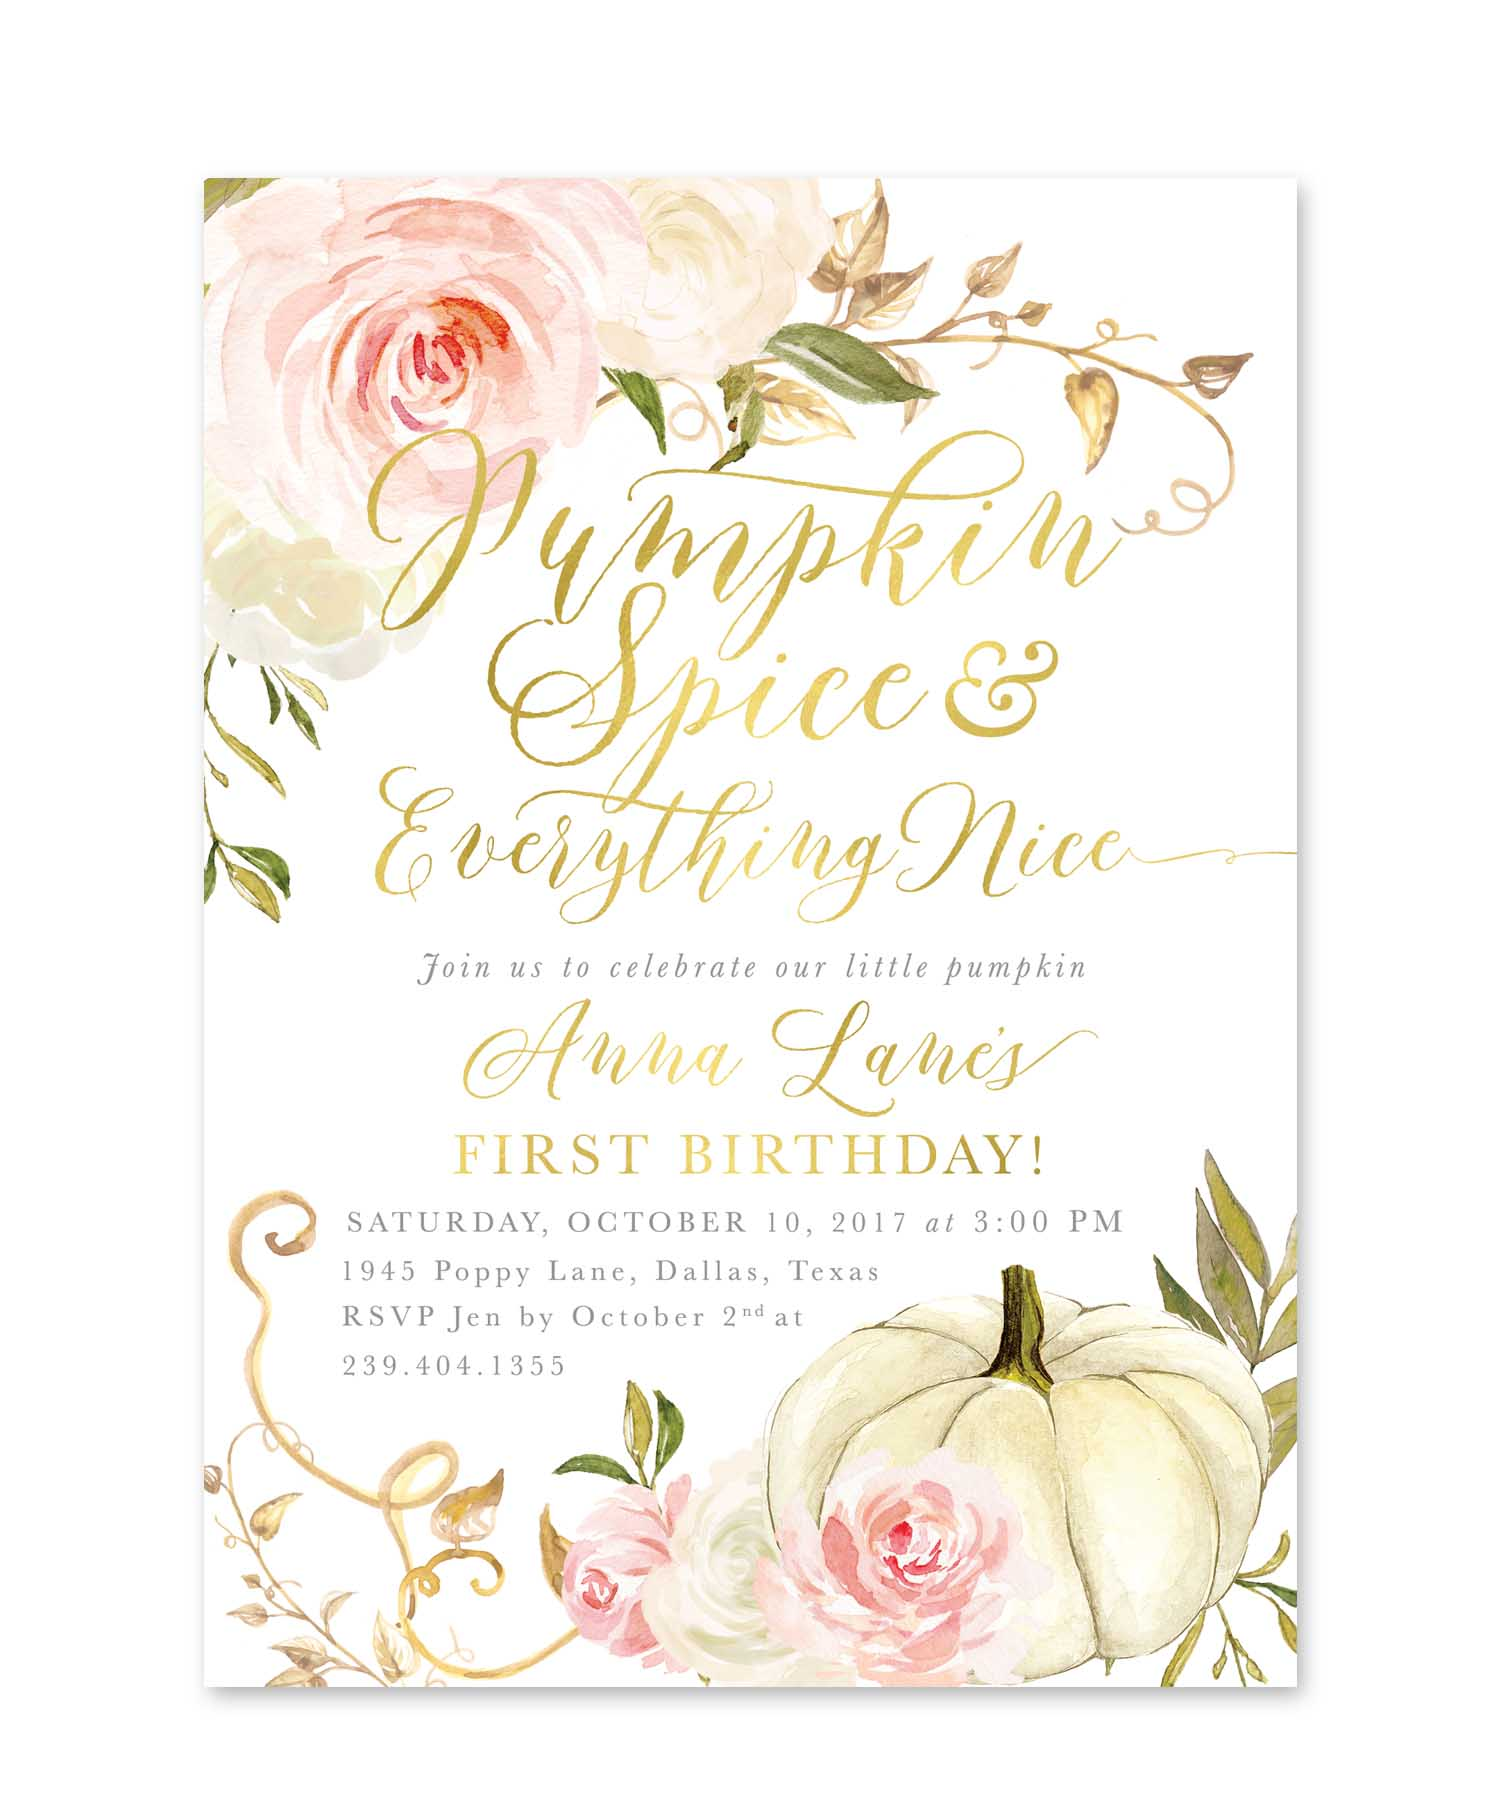 Pumpkin spice everything nice birthday invitation fall girl pumpkin spice everything nice birthday invitation fall girl birthday invite girl first birthday party any age pink roses fall 11 filmwisefo